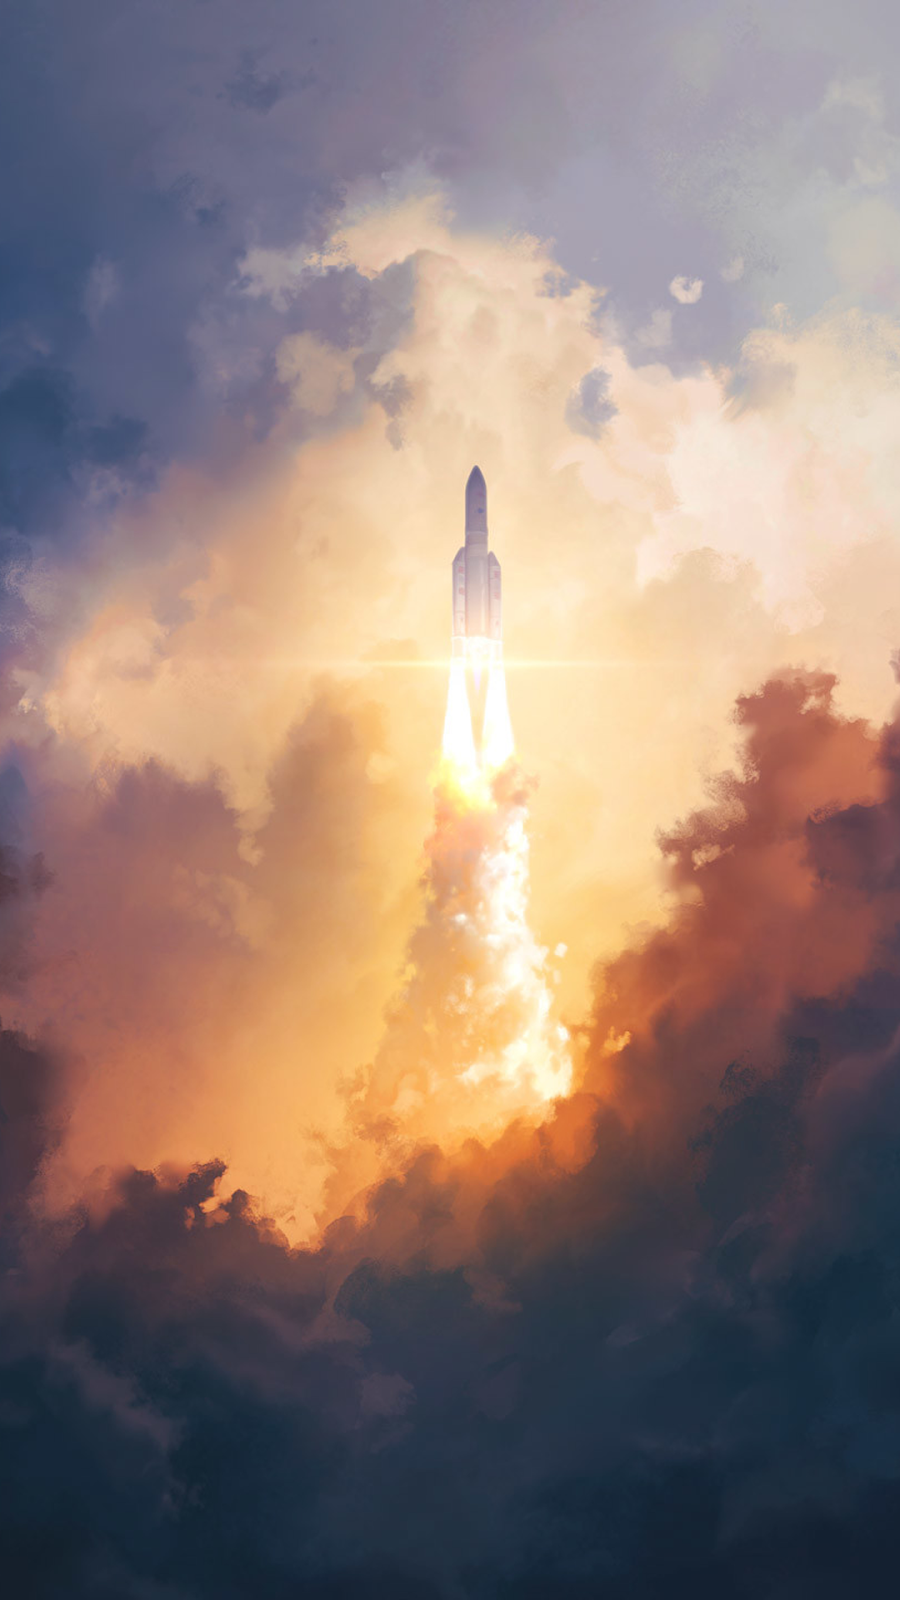 space hd illustration background iphone wallpaper free download